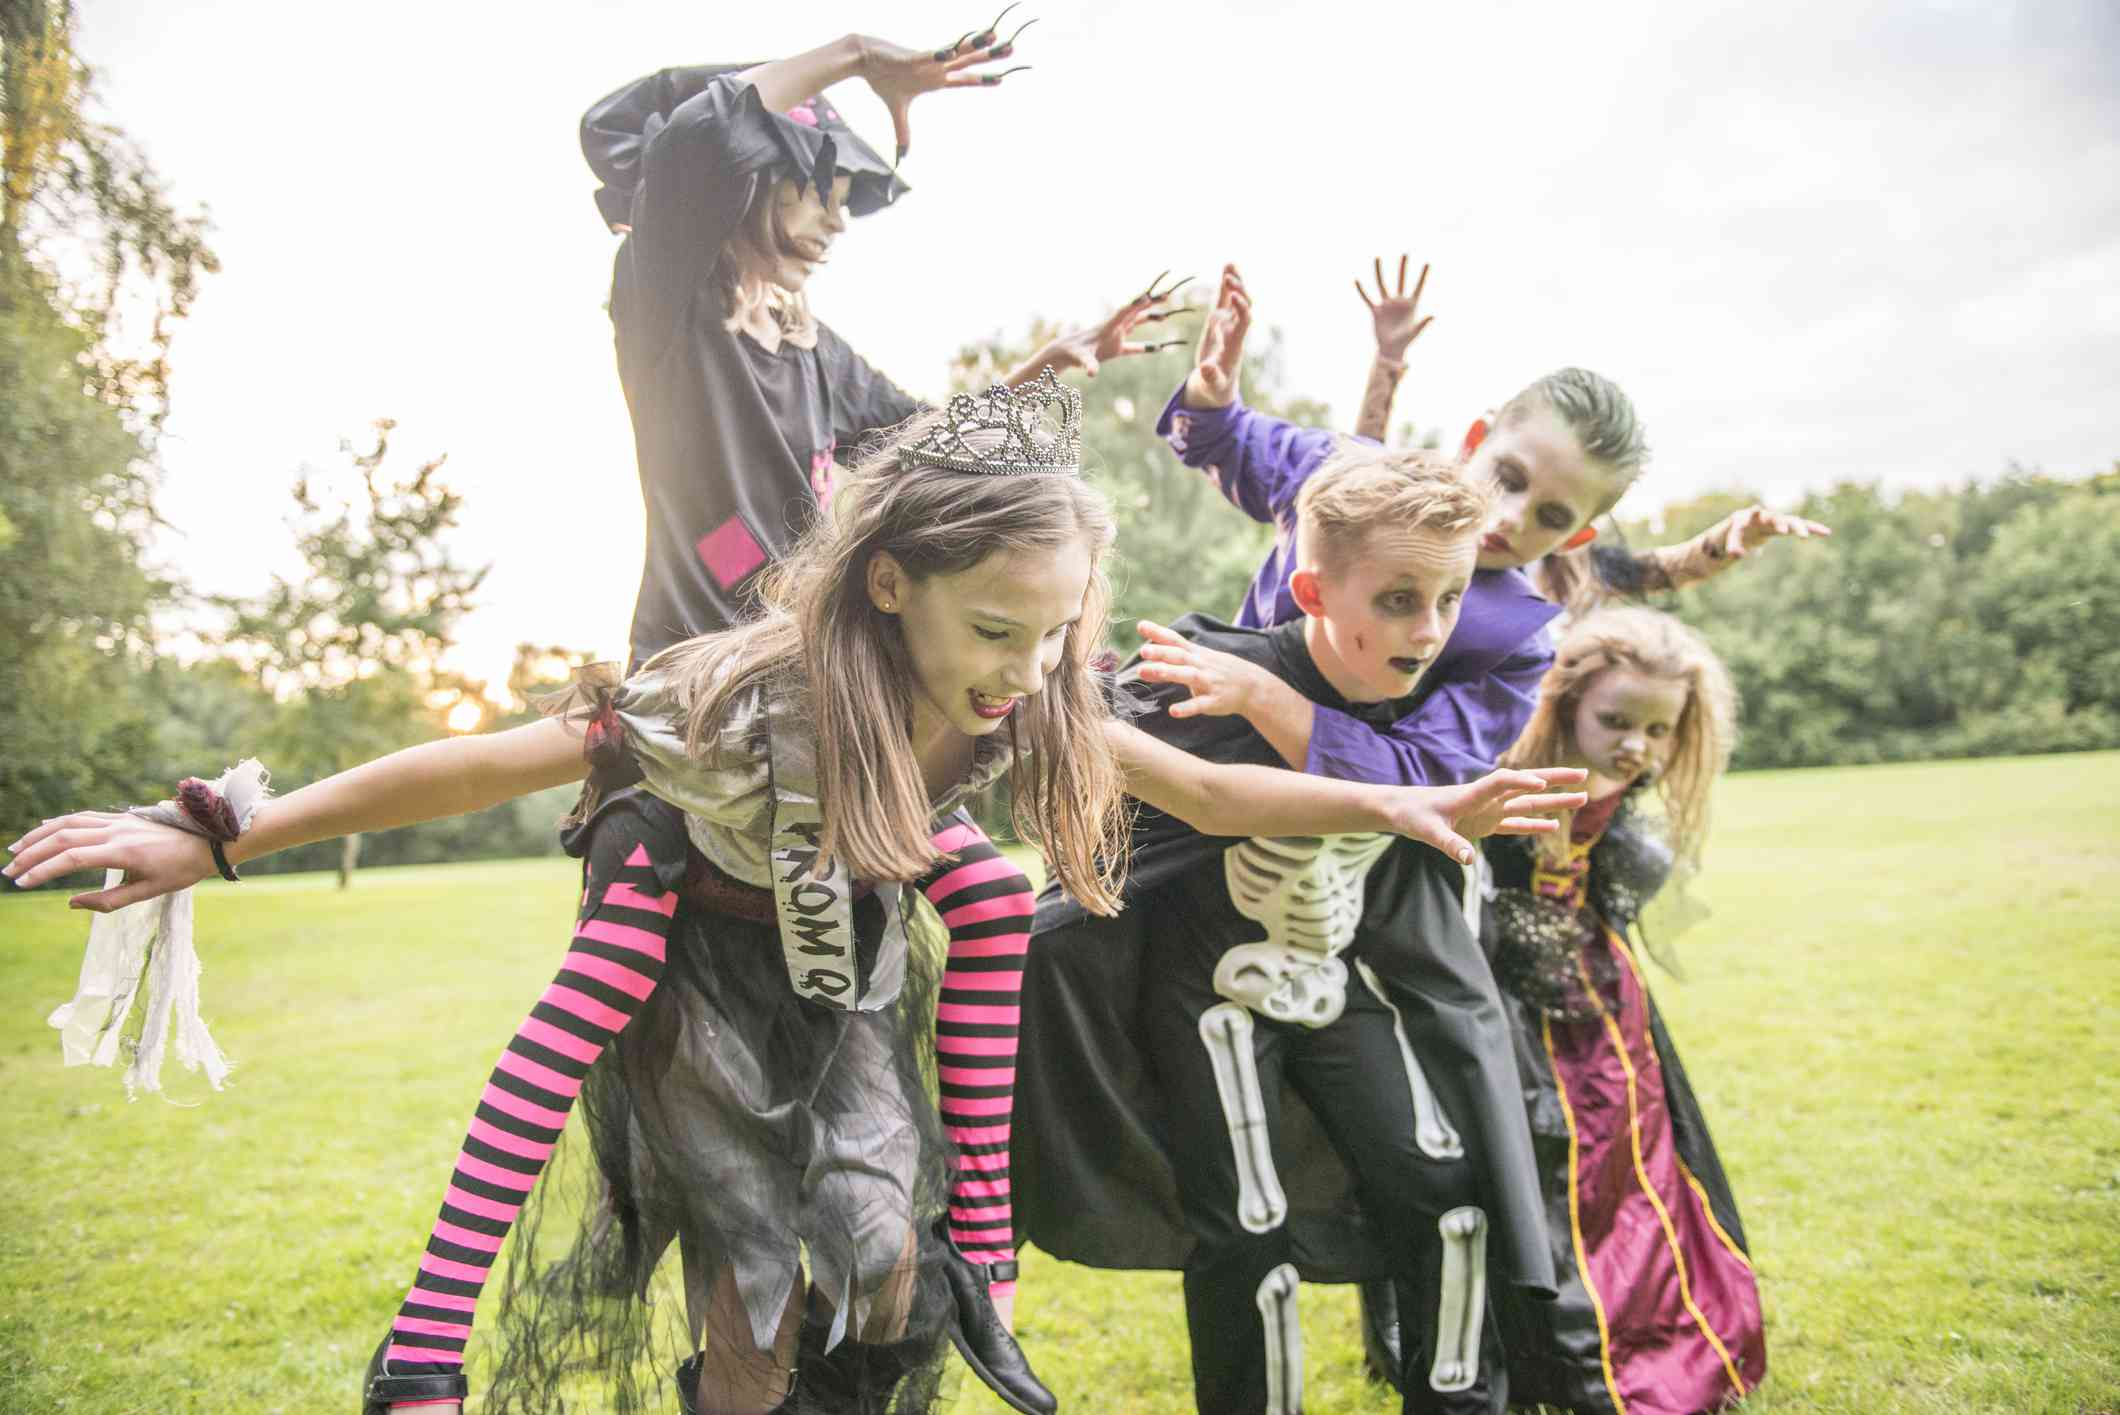 Children dressed as zombies for Halloween Night